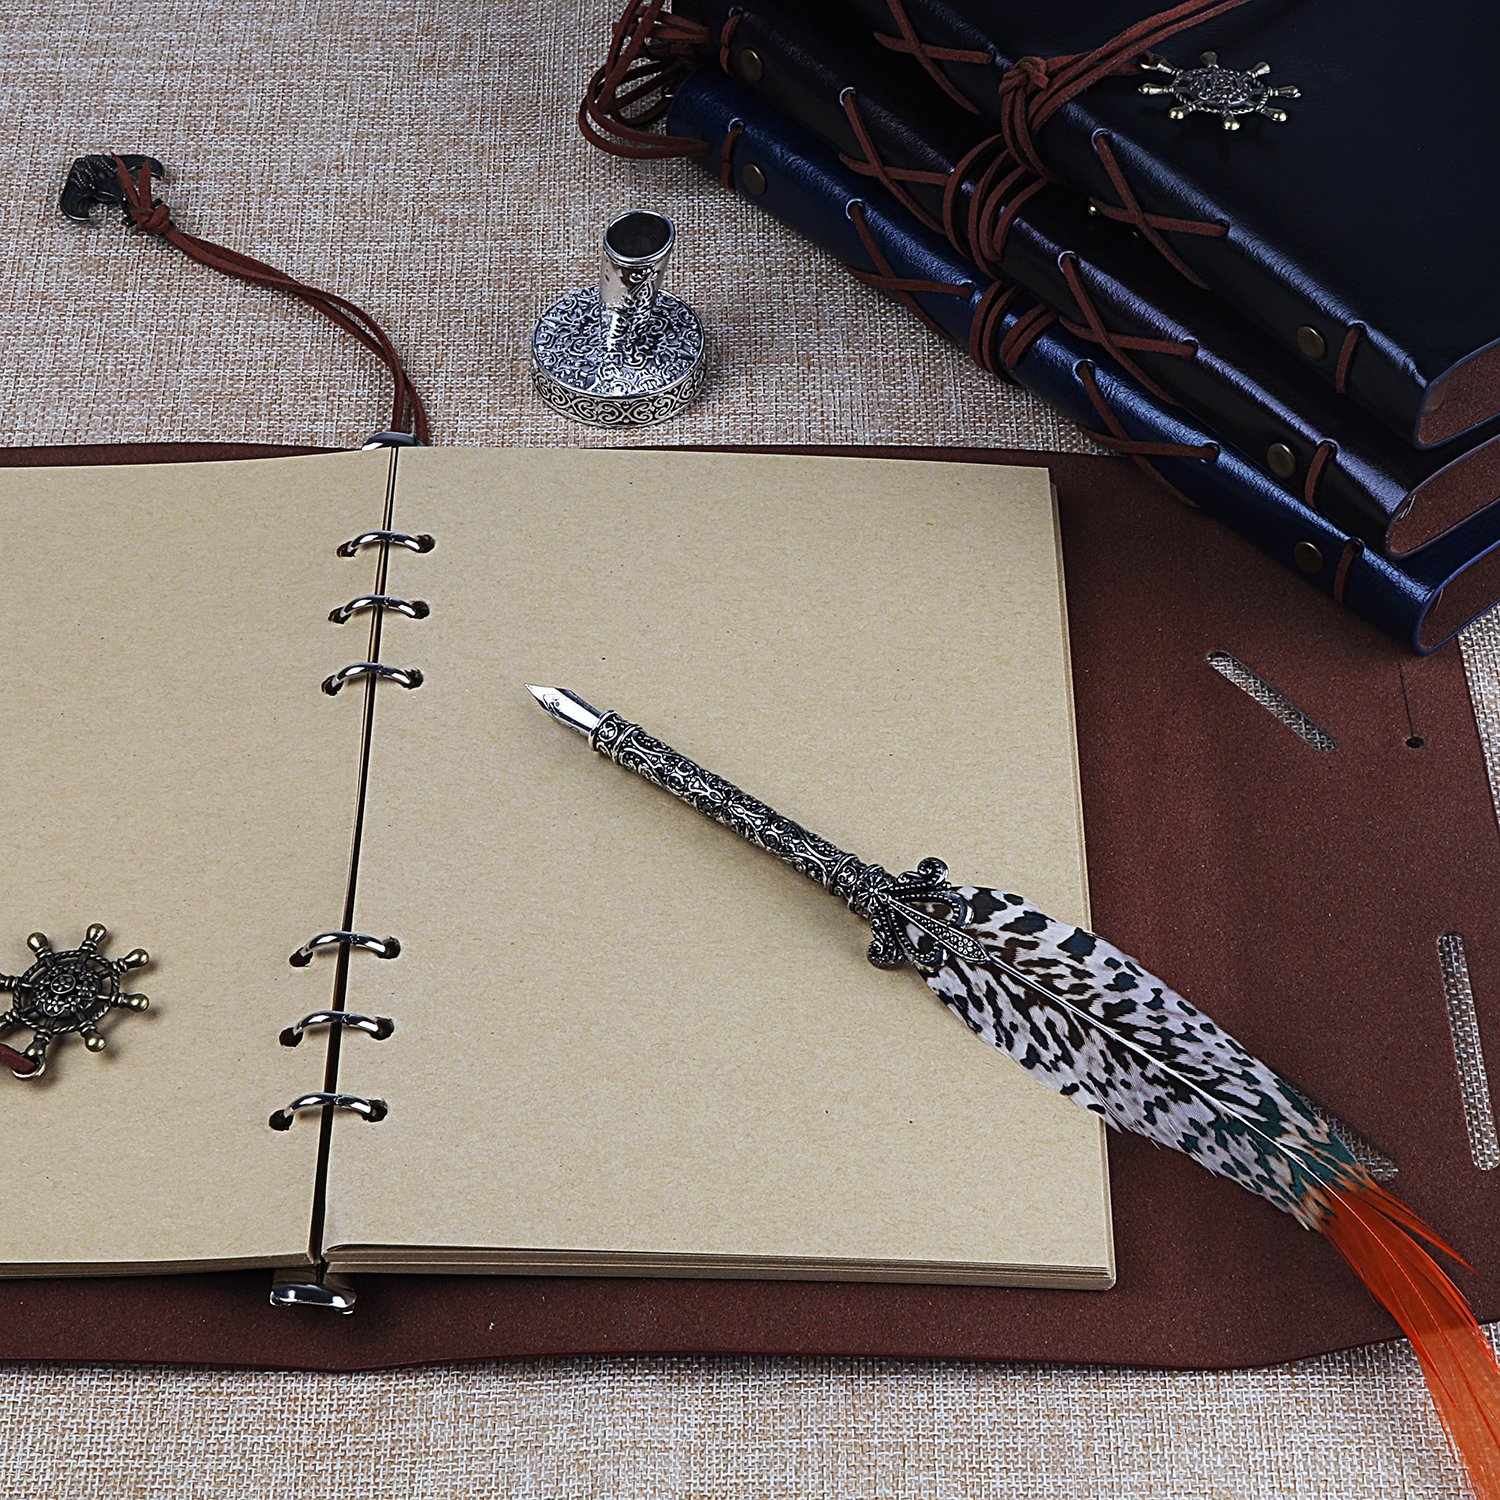 Handmade Large-Sized Retro Leather Corsair Notepad Travel Journal Notebook Drawing Sketch Writing Classic Nautical Guide Dial Embossed Vintage Copper Pendant 80sheets A5 Blank Unlined Paper (coffee) by molshine (Image #6)